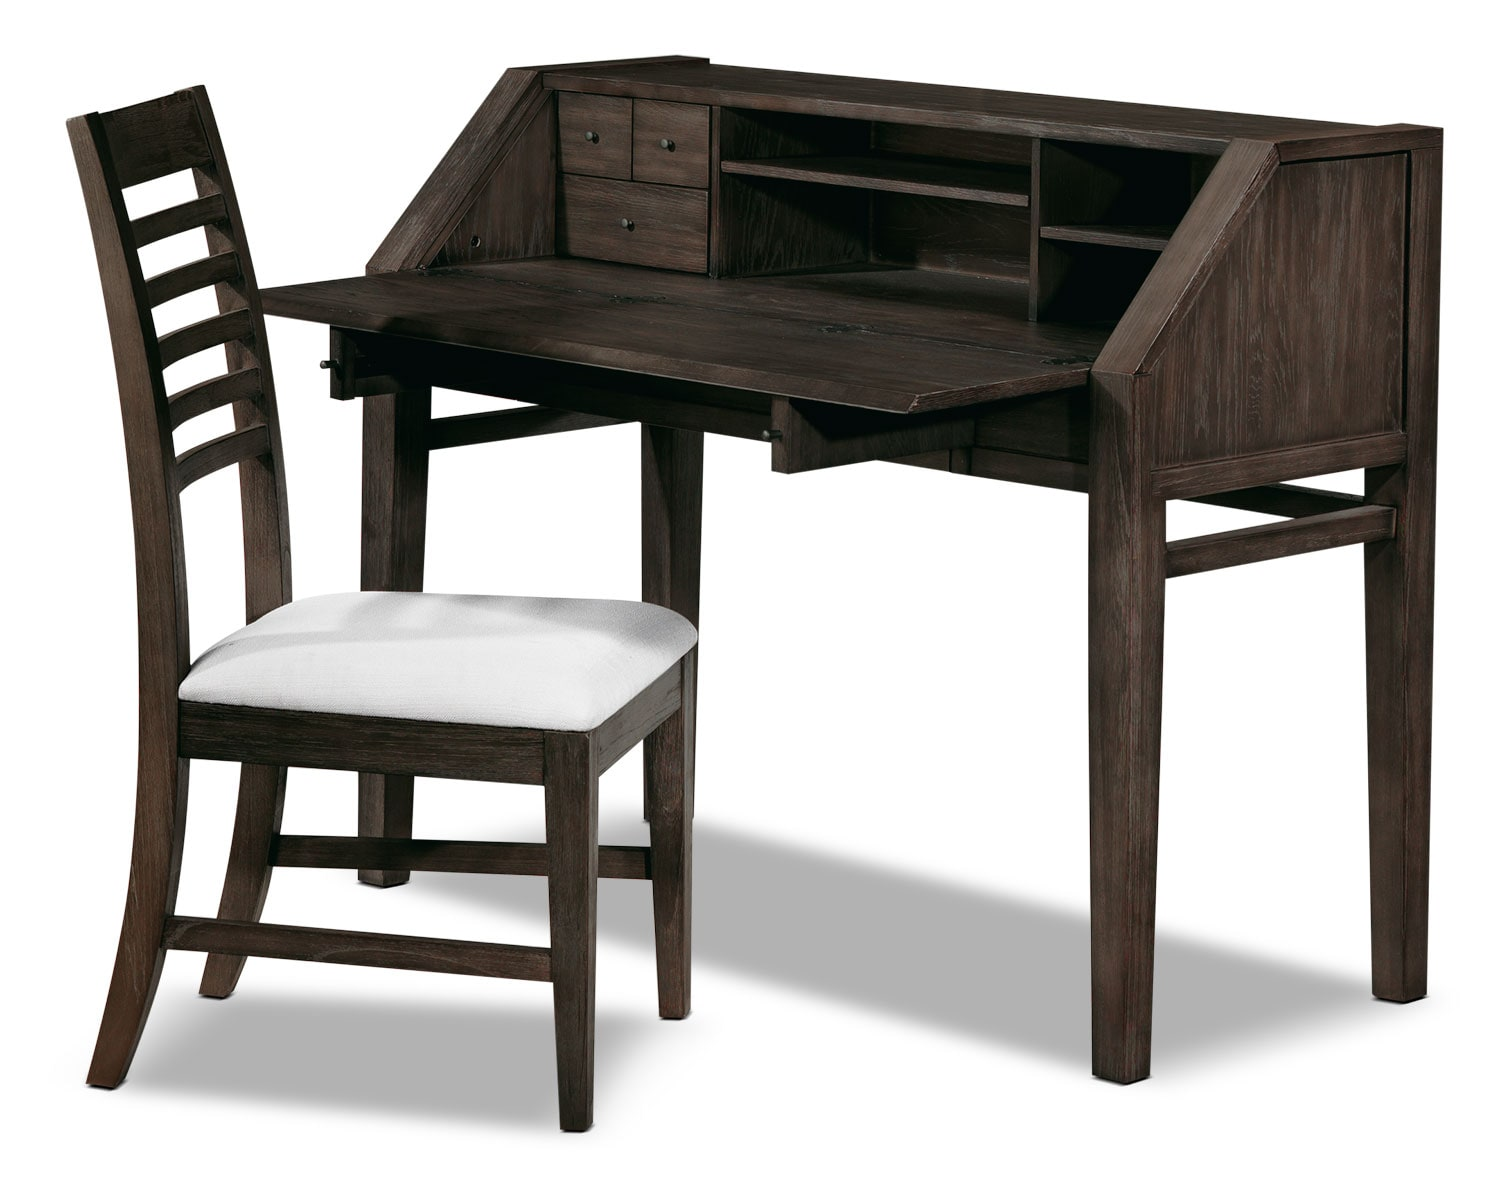 Bedroom Furniture - Bravo 2-Piece Desk and Chair Set - Platinum Oak